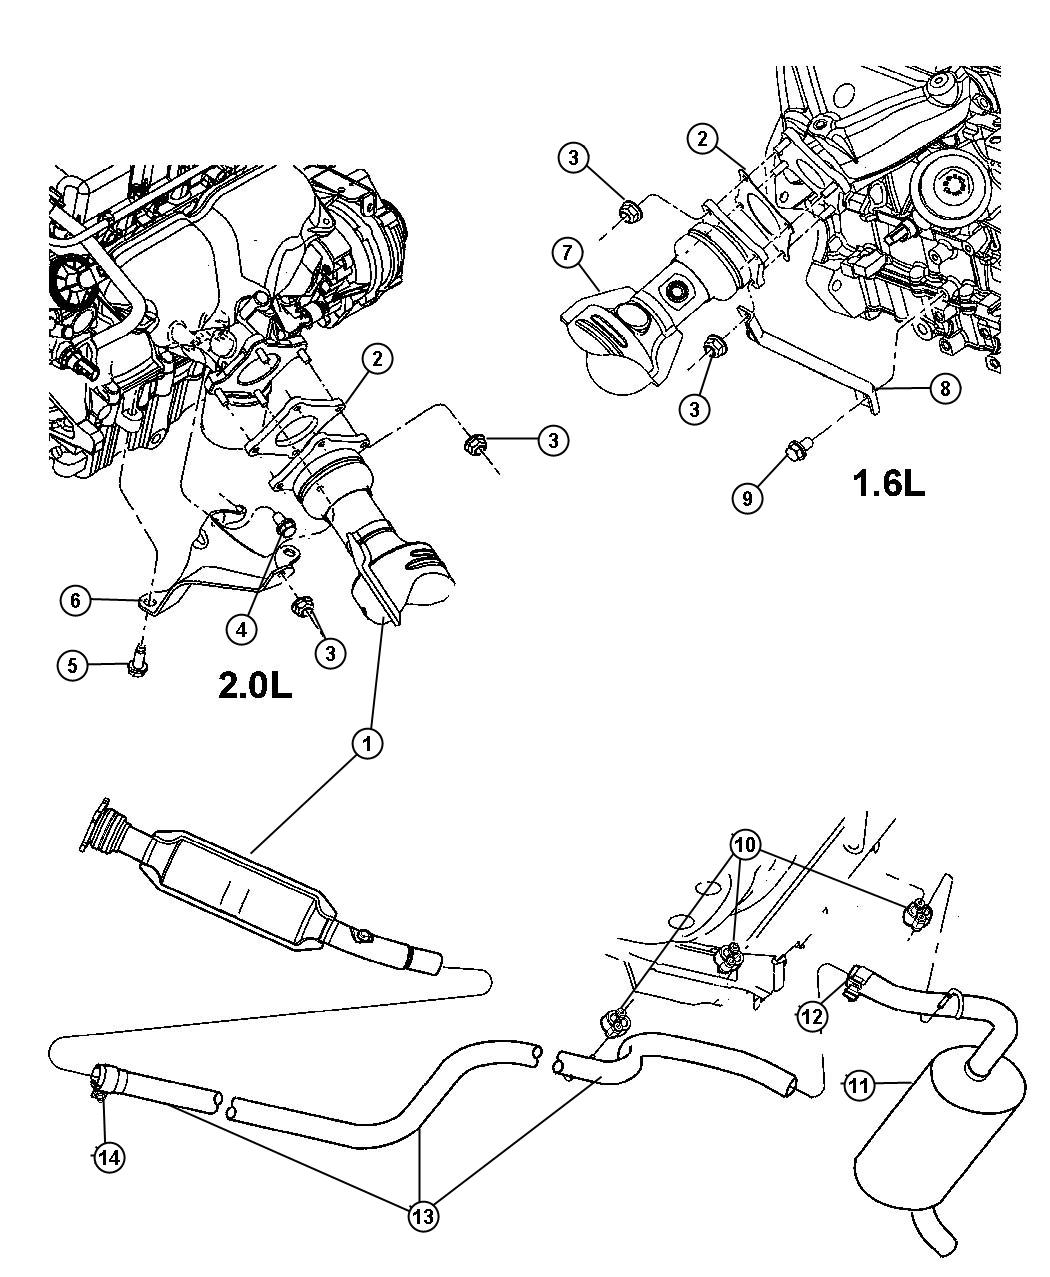 Eton Viper 90 Parts Wiring Source Kawasaki 80cc Schematics Mini 50 Diagram